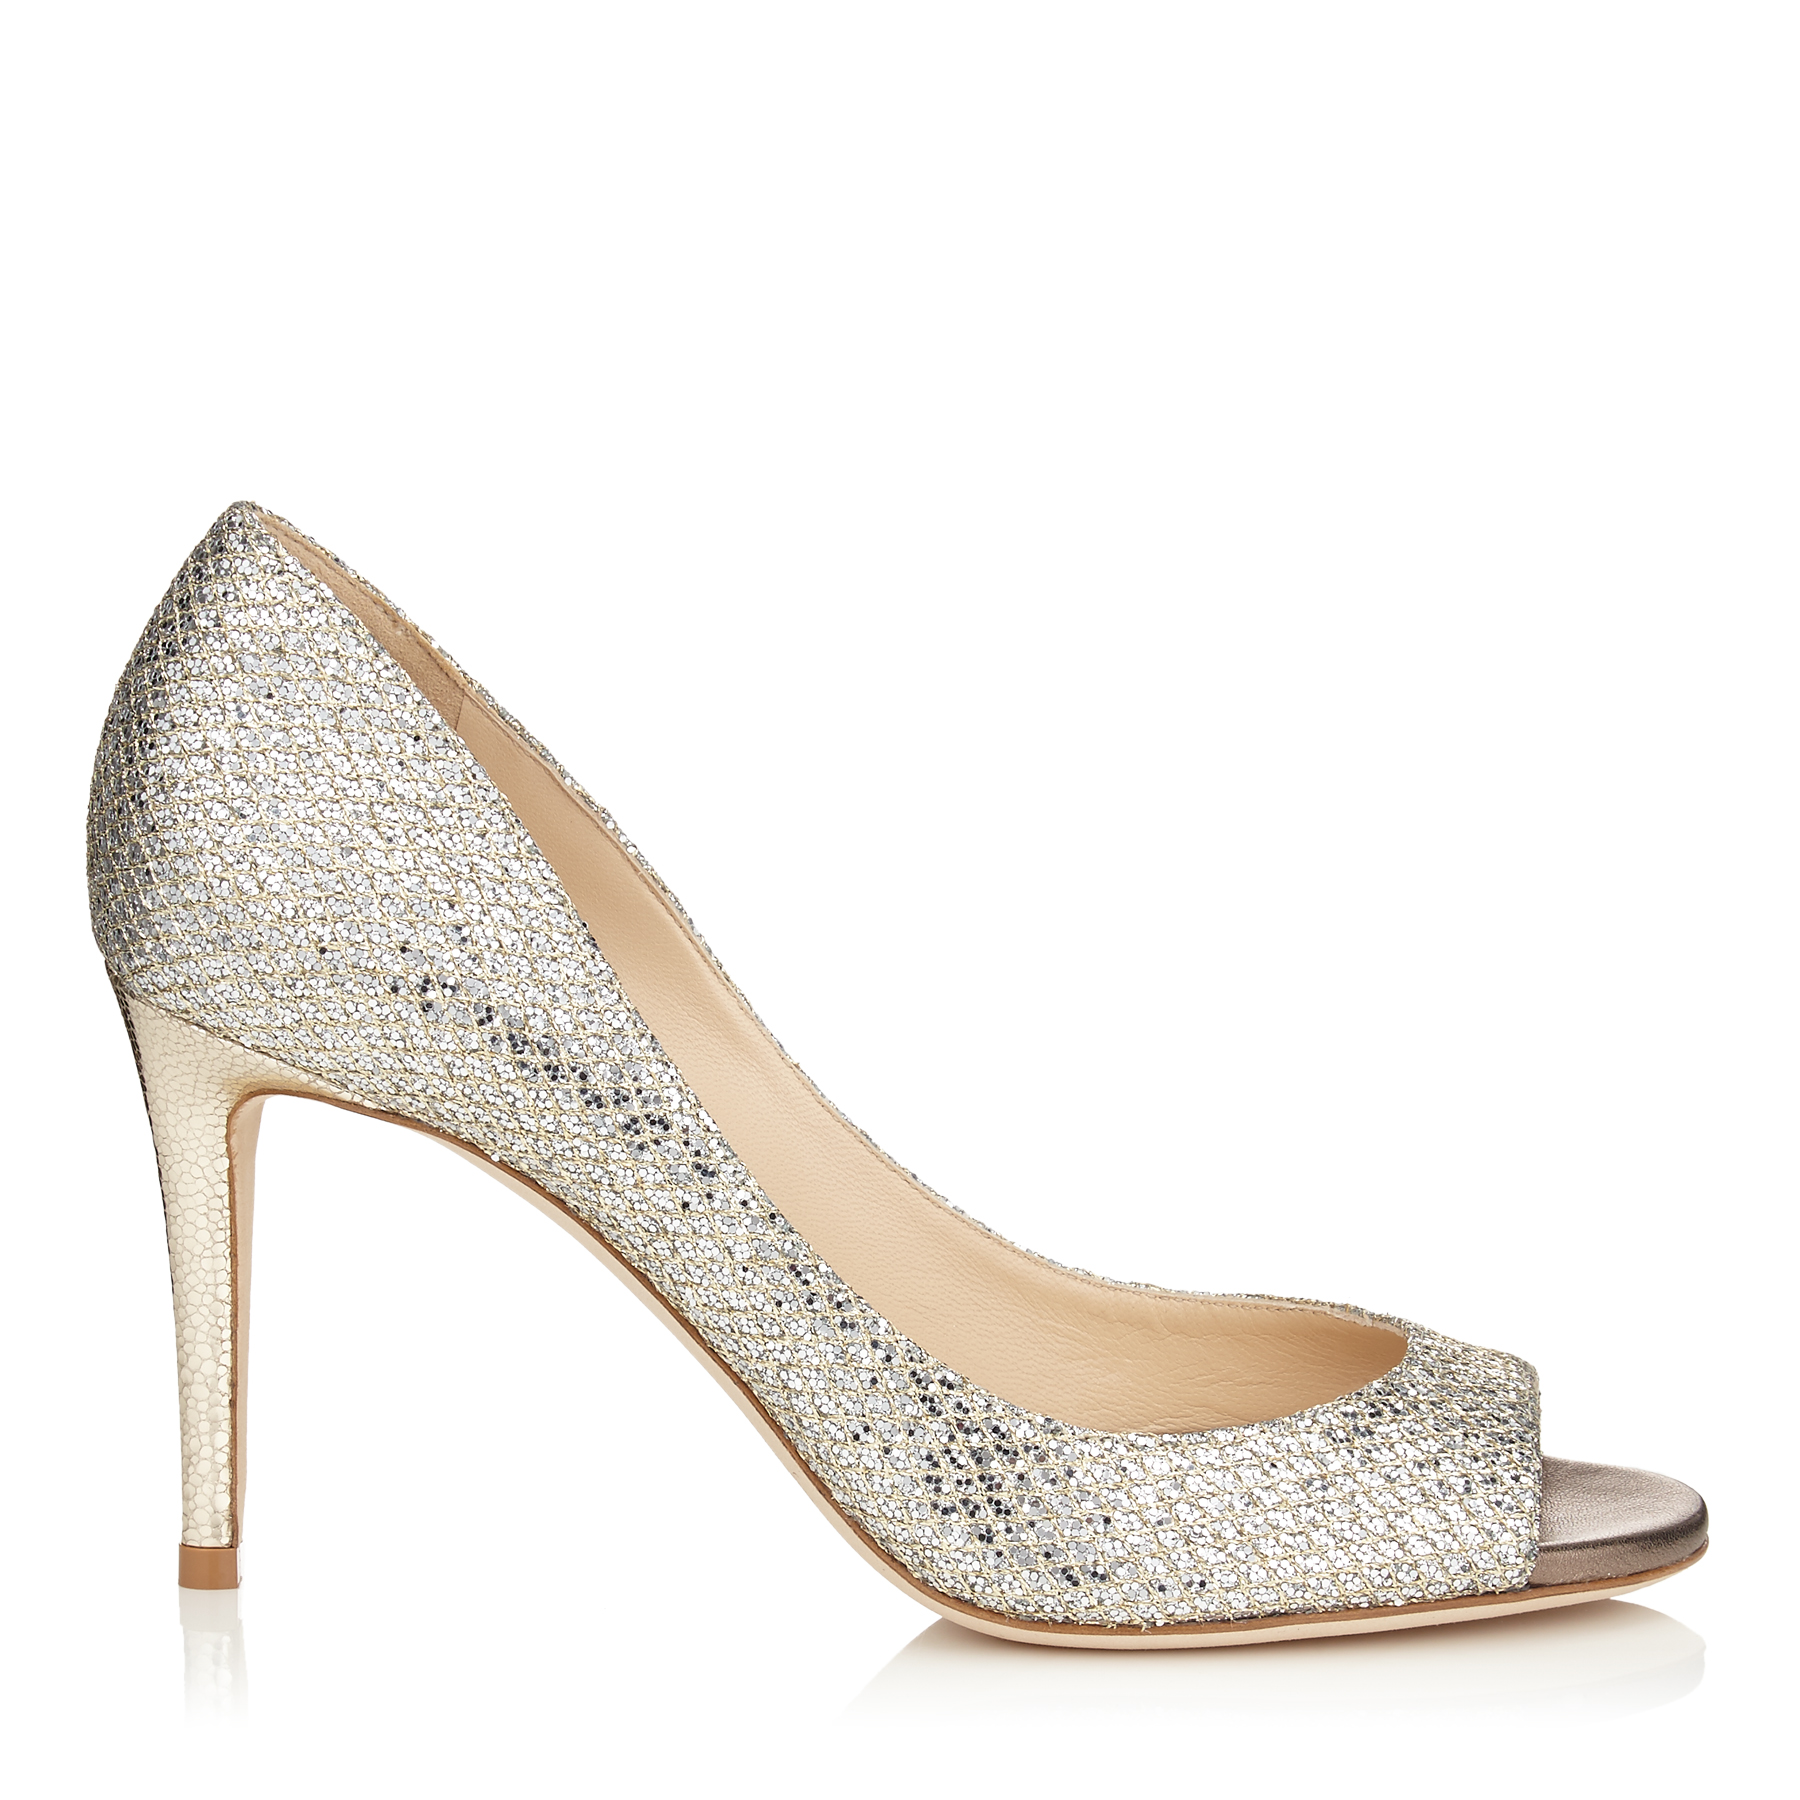 EVELYN 85 Champagne Glitter Fabric Peep Toe Pumps by Jimmy Choo